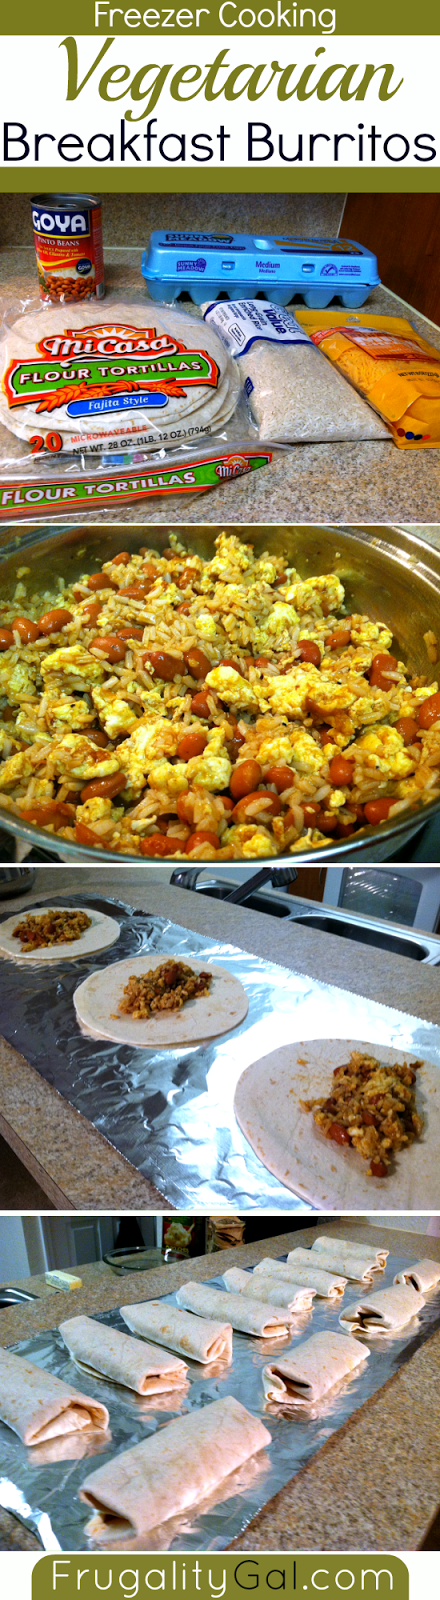 Freezer cooking: Vegetarian breakfast burritos. Tasty, filling and ...